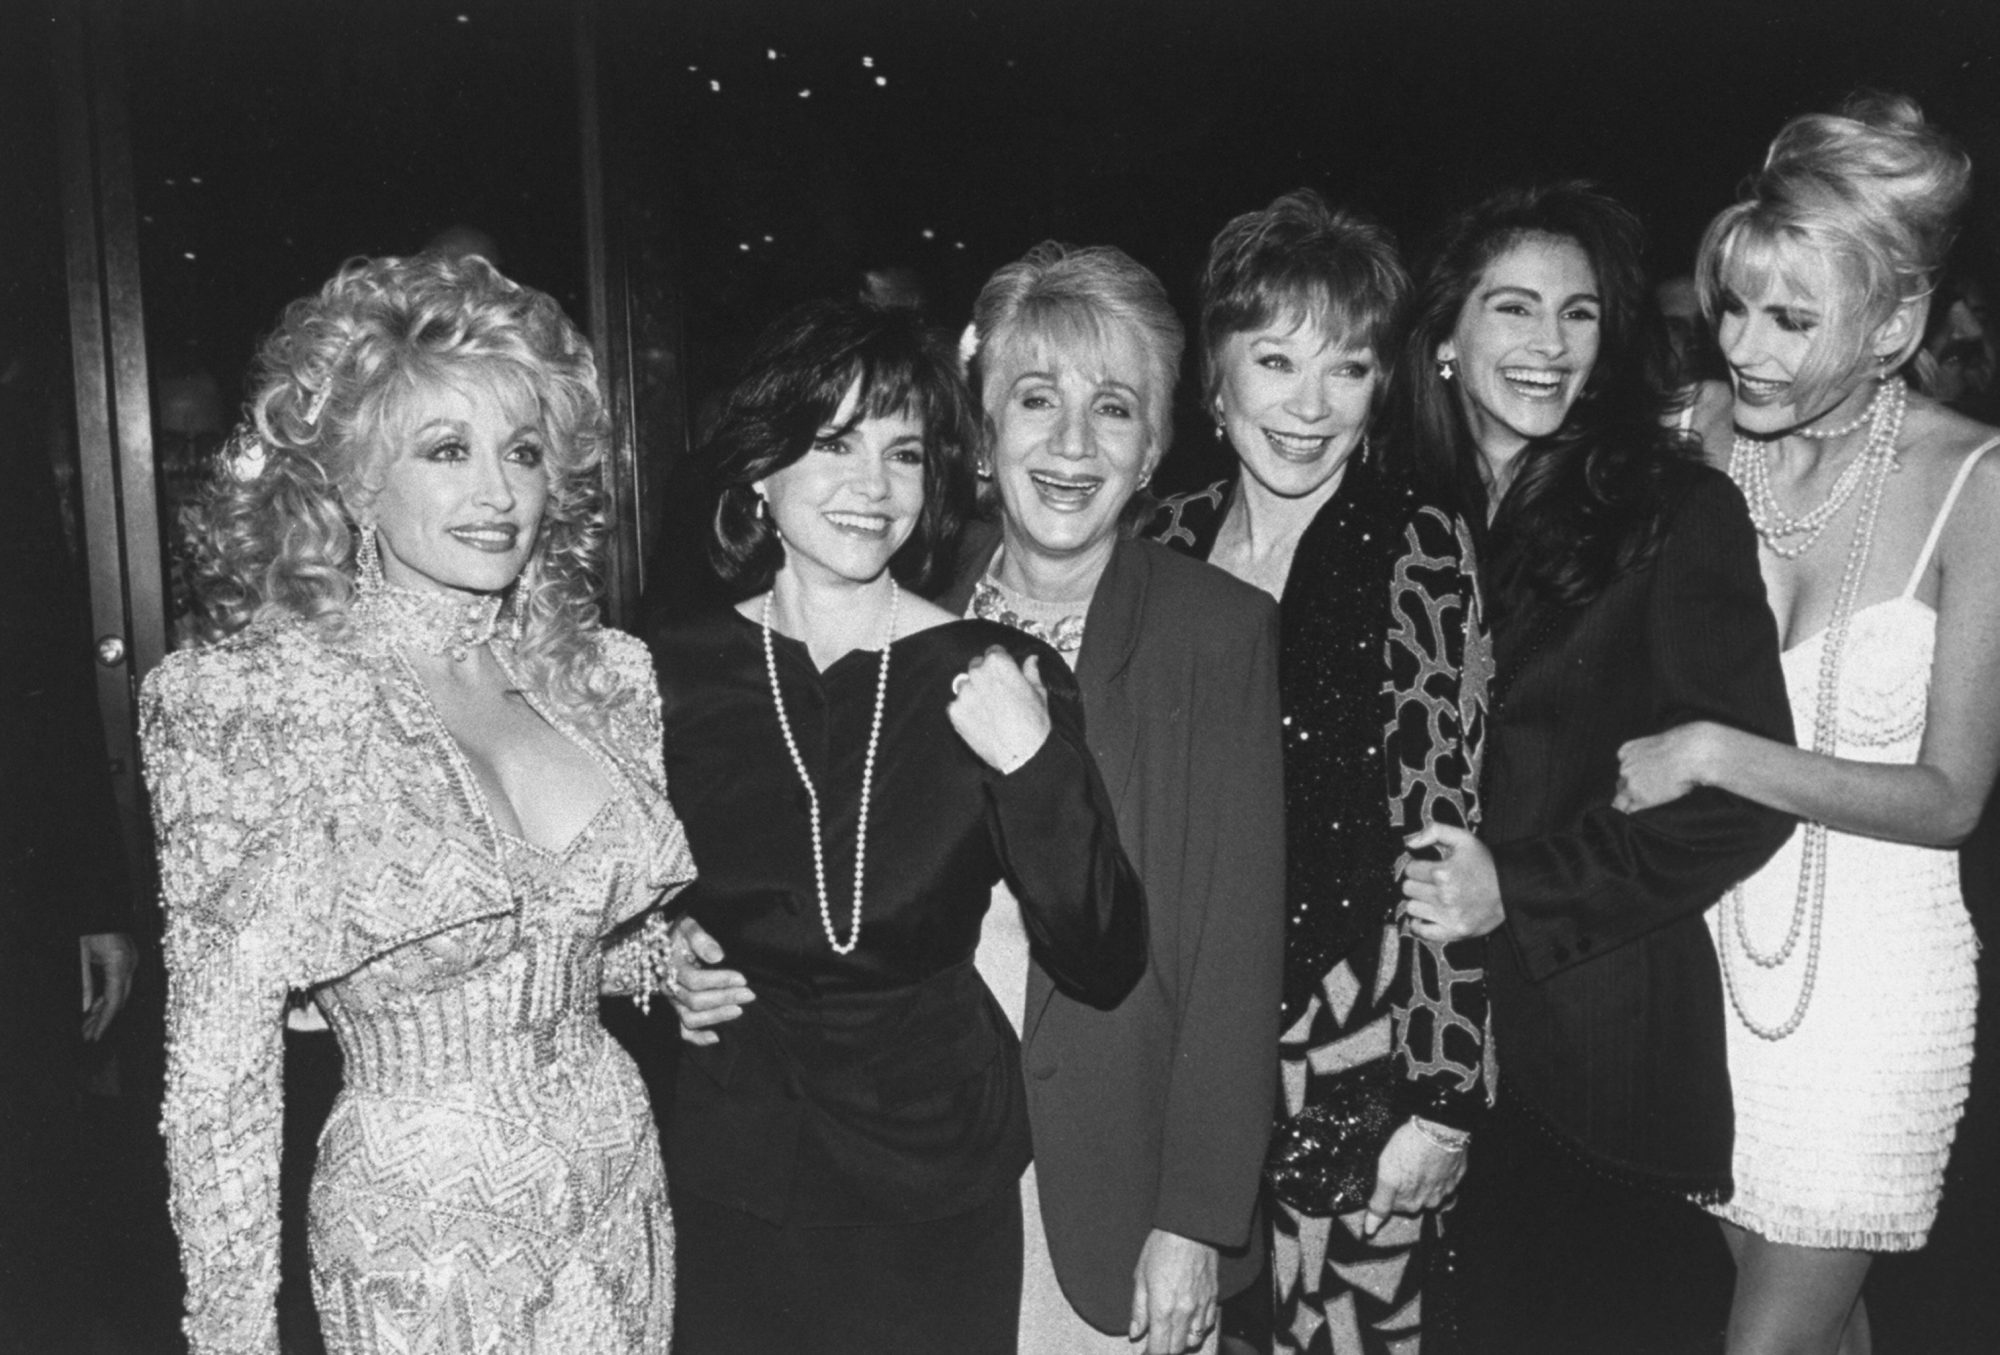 Steel Magnolias Cast at Premiere